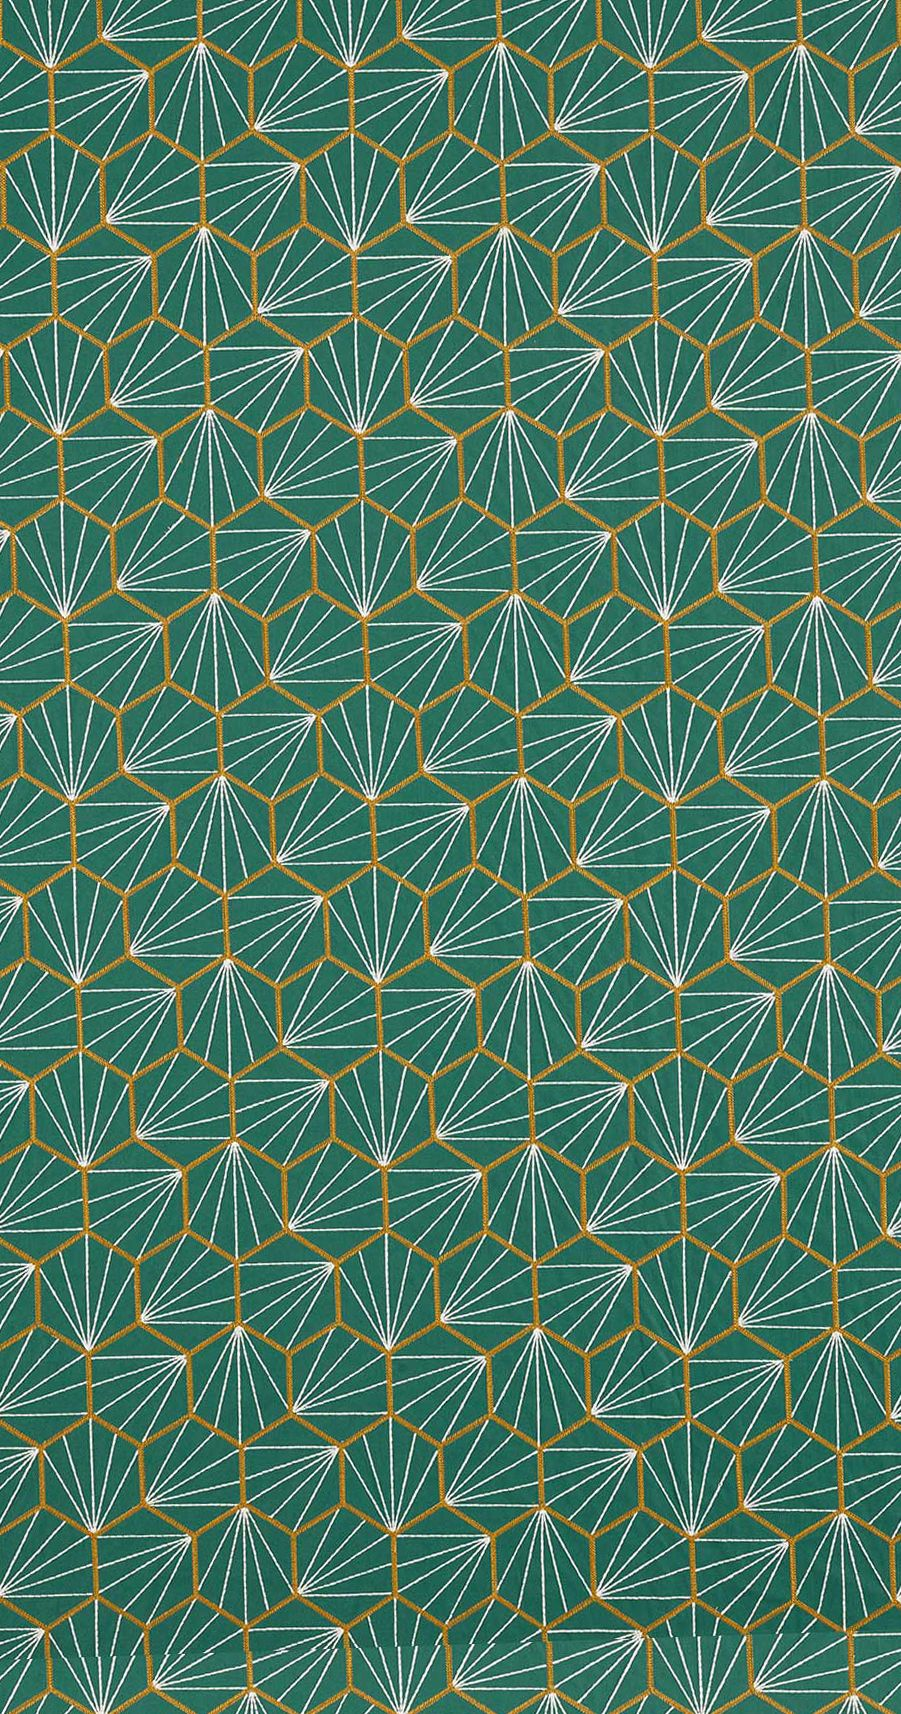 Aikyo Fabric - Teal - by Scion